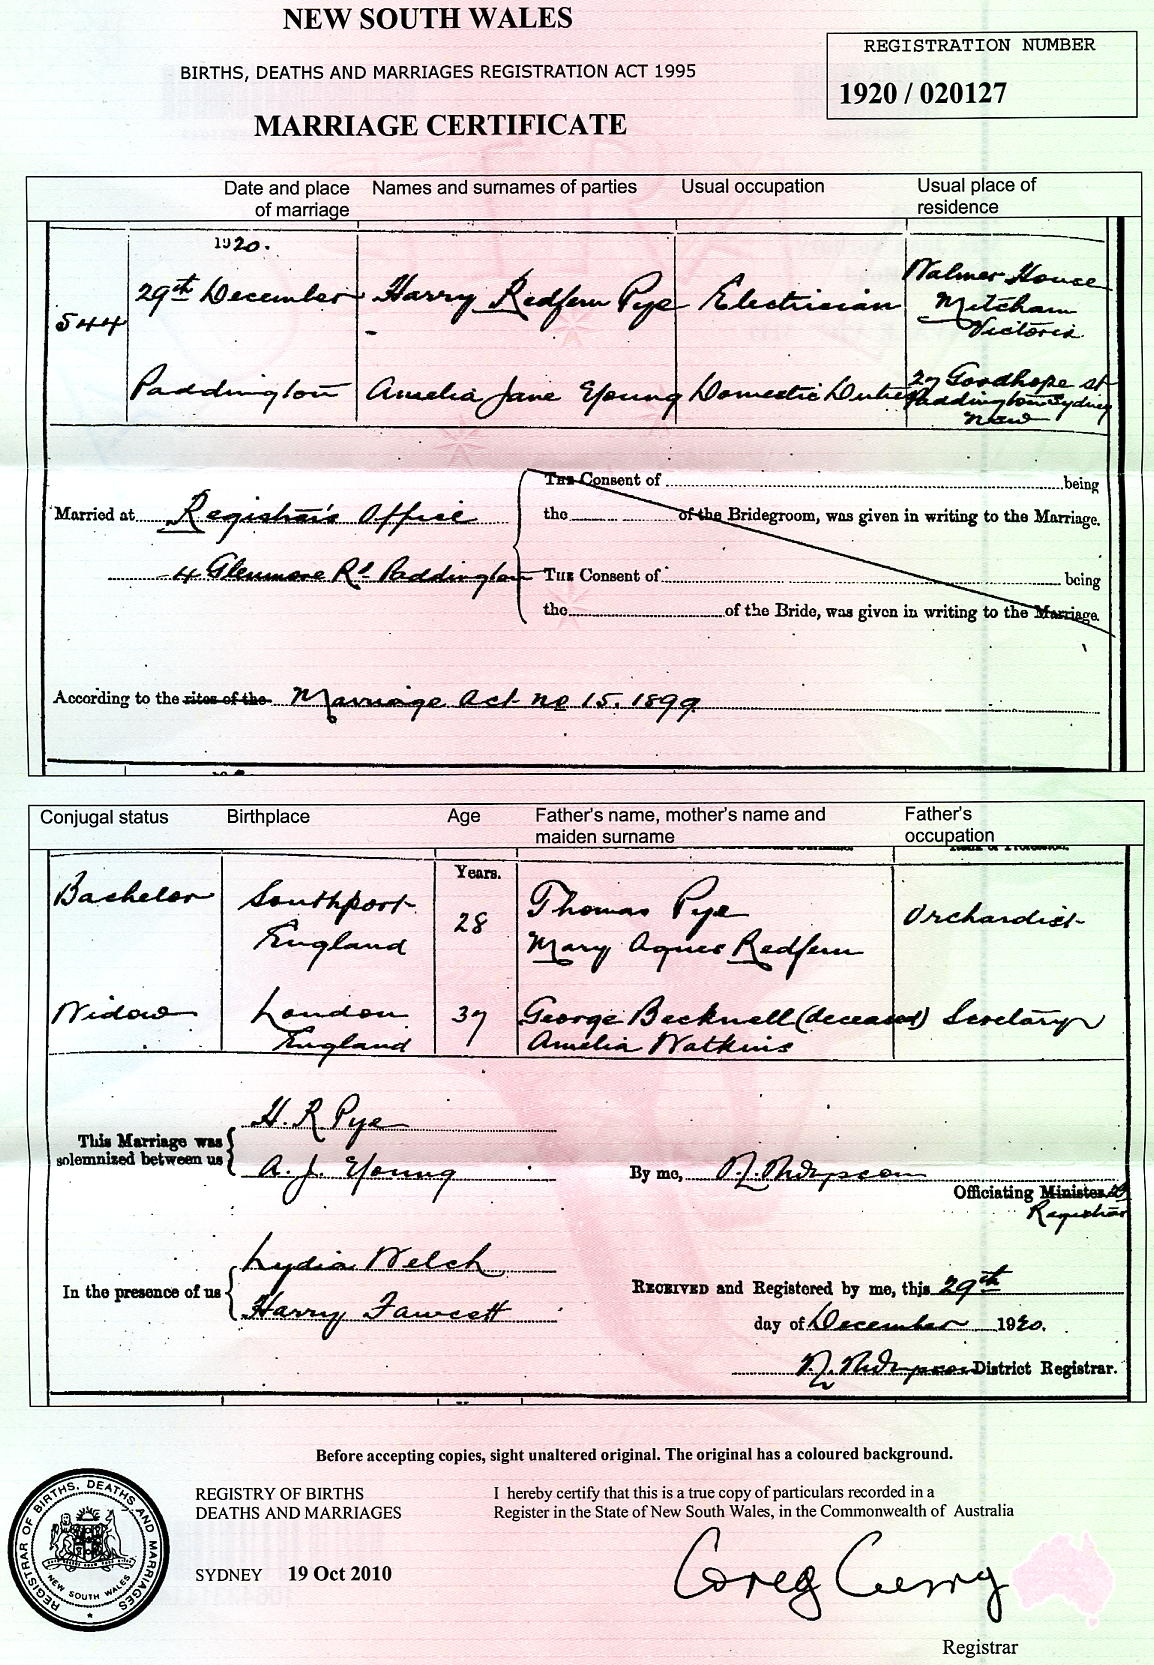 Harry Redfern Pye and Amelia Jane Bicknell marriage certificate